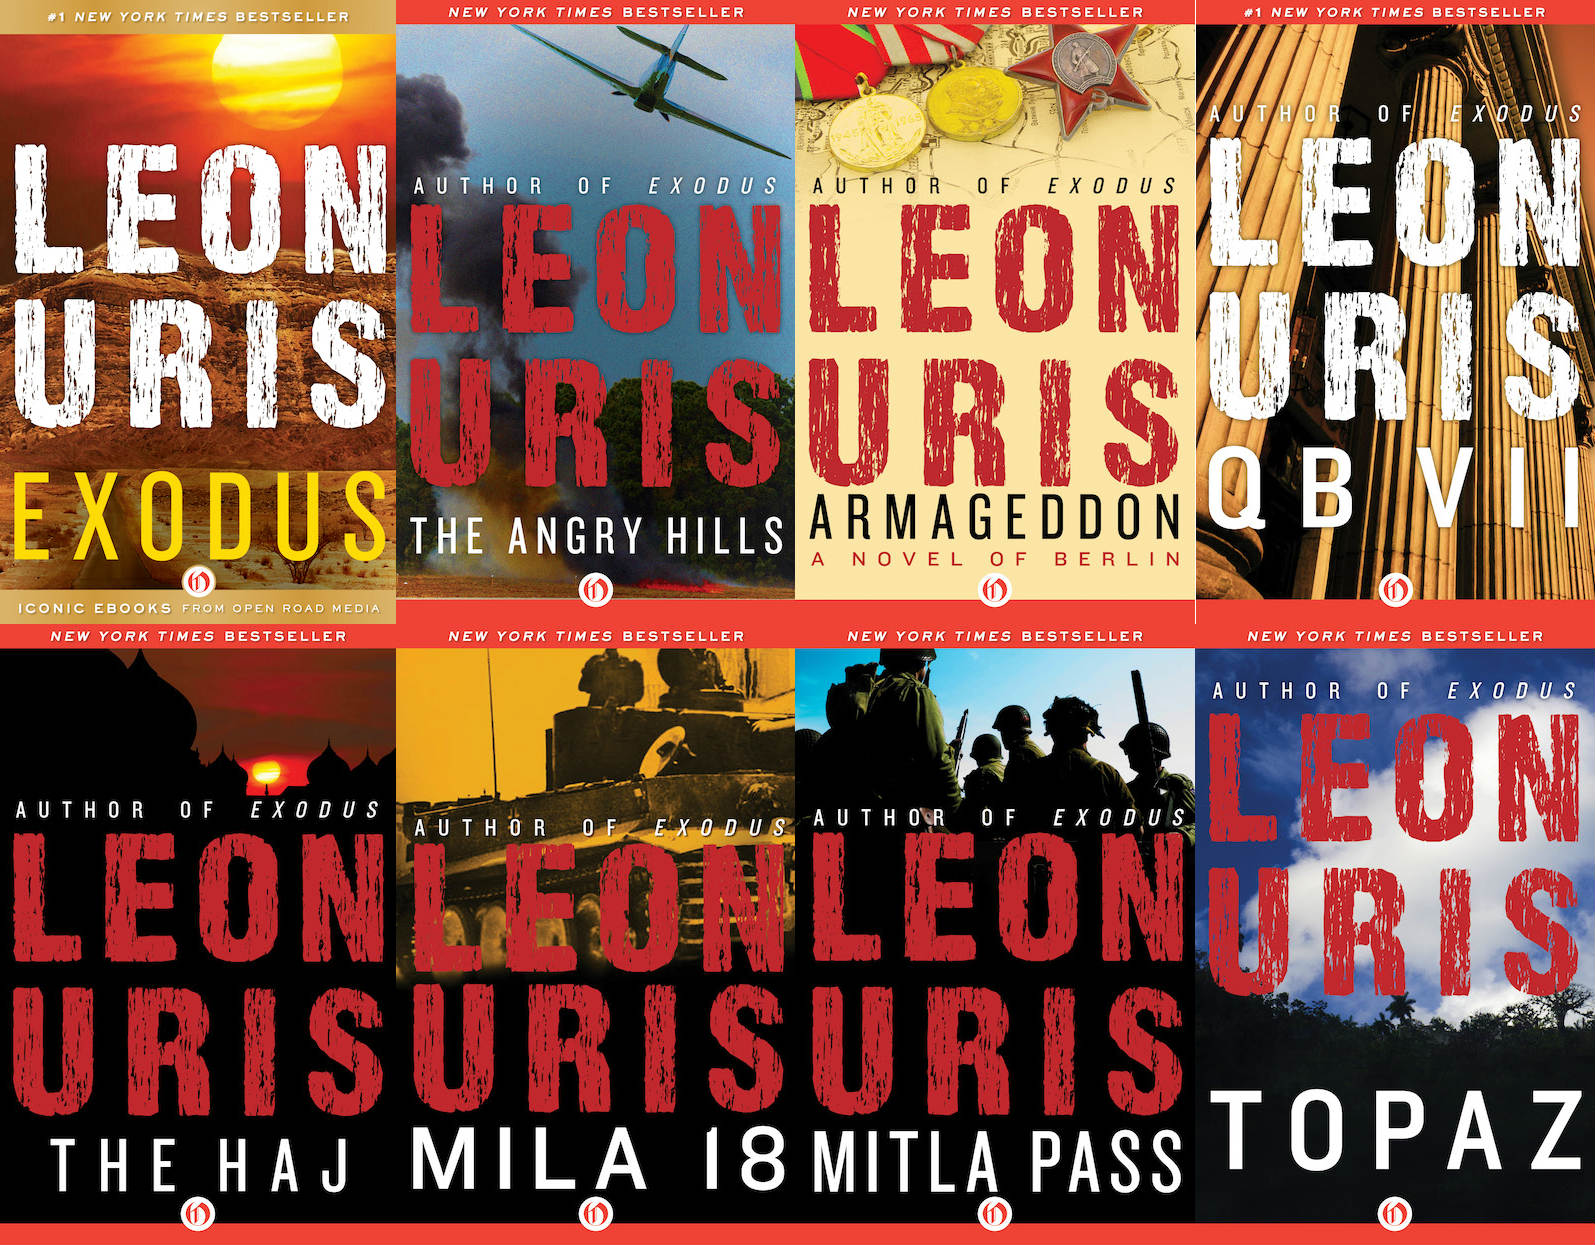 a review of the uris novel exodus Scholarly review published by h-net reviews exploring the influence of uris's exodus few novels have ever wielded the sociopolitical influence of leon uris's exodus, about the founding of israelpublished in 1958, the book became an international bestseller and was translated into over fifty languages.